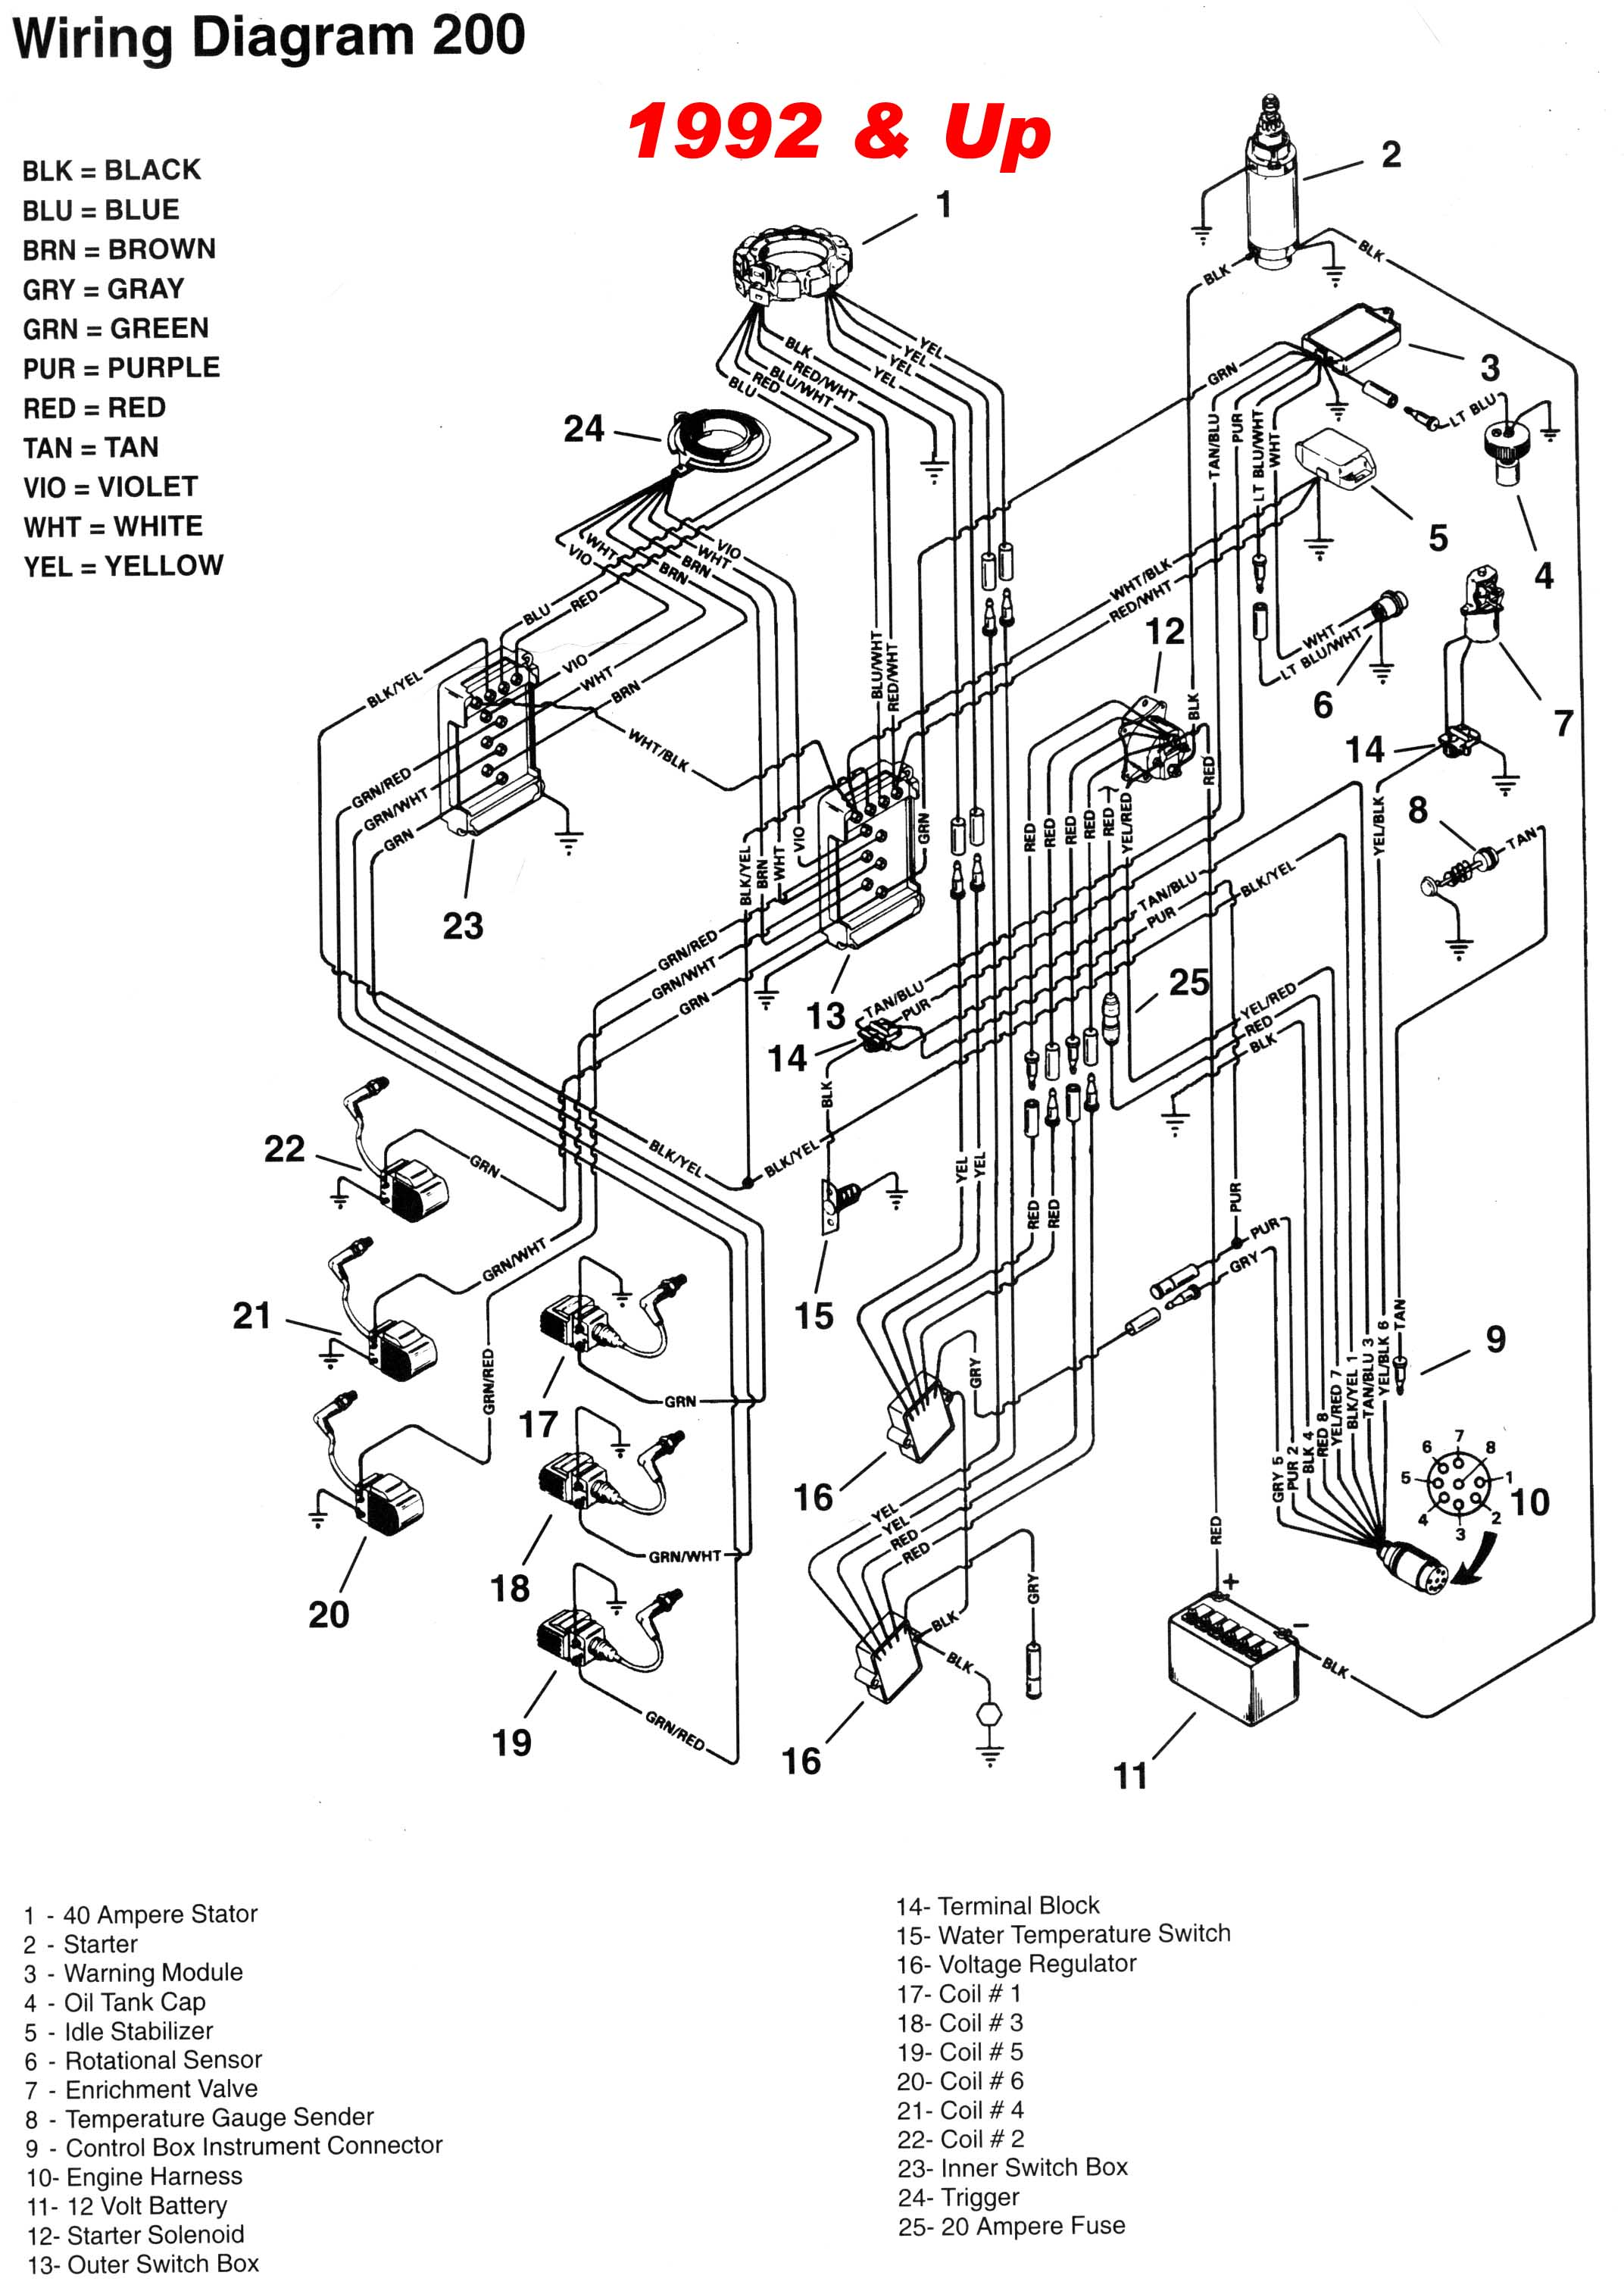 mercury_92up_200_wiring mercury outboard 2 5 and 3 0l v6 and gearcase faq mercury 14 pin wiring harness diagram at mr168.co